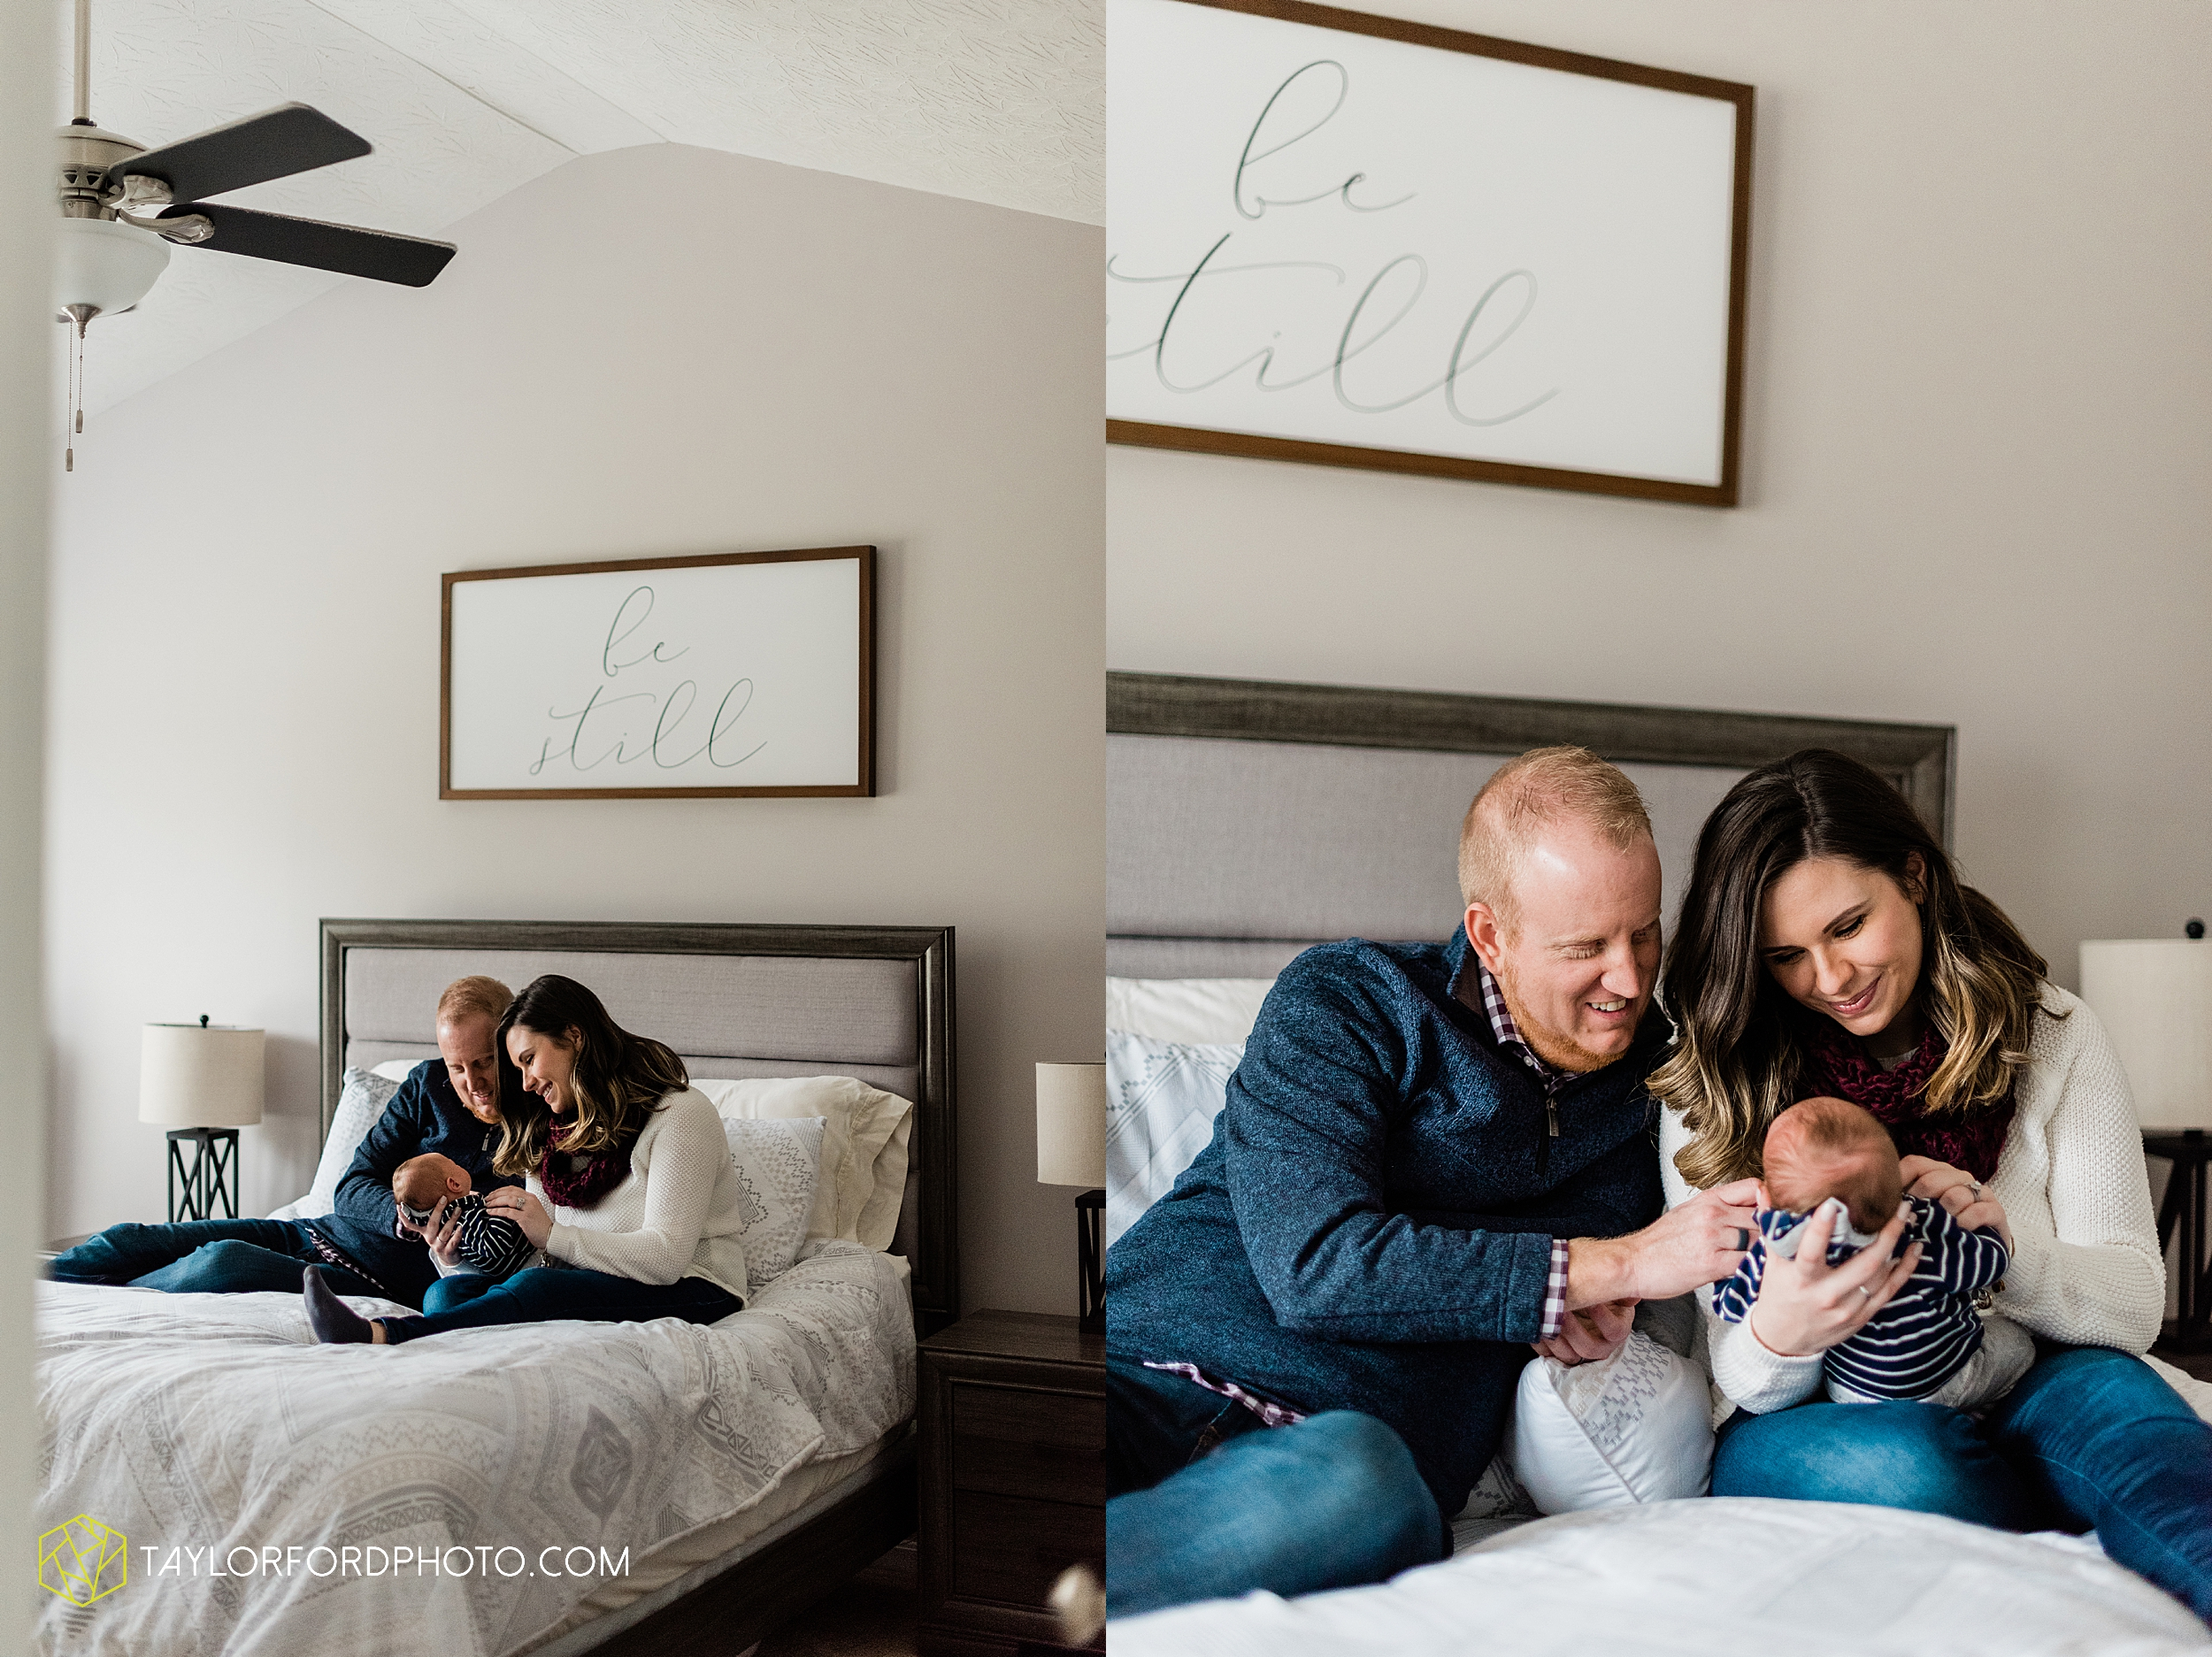 pramuk-cincinatti-west-chester-ohio-newborn-at-home-photography-taylor-ford-hirschy-photographer_2289.jpg